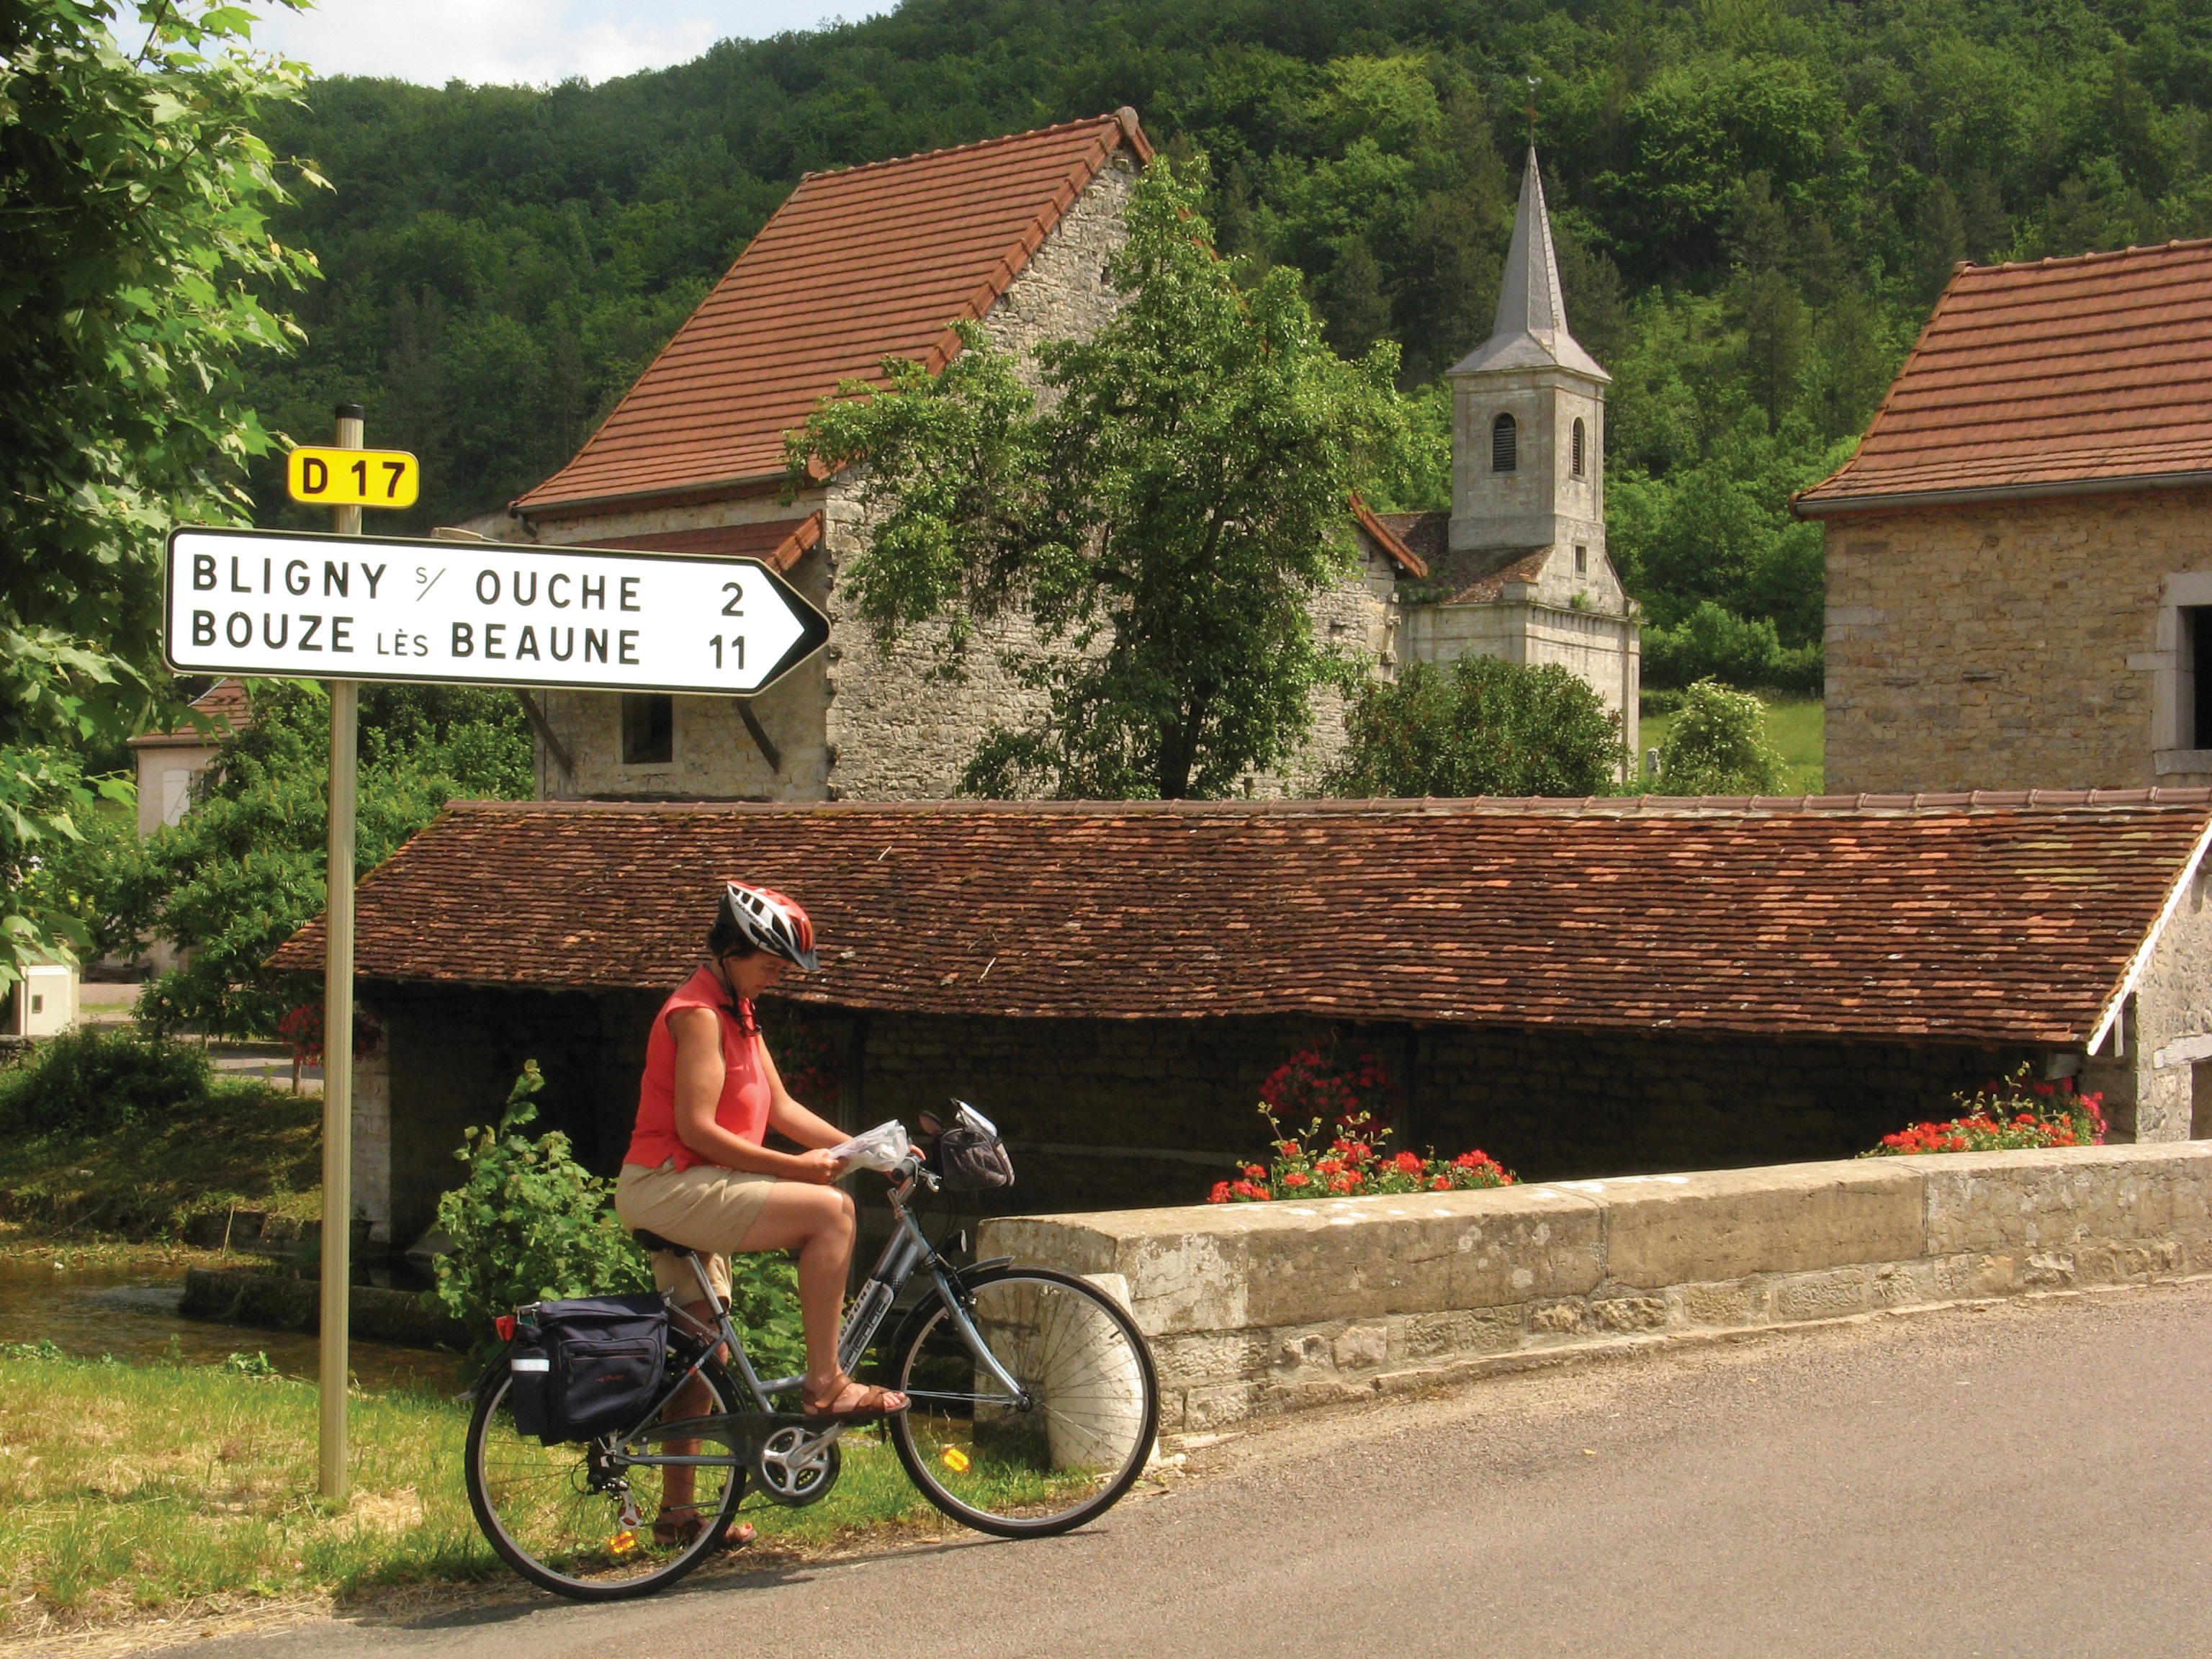 Cycling the Vineyards & Villages of Burgundy